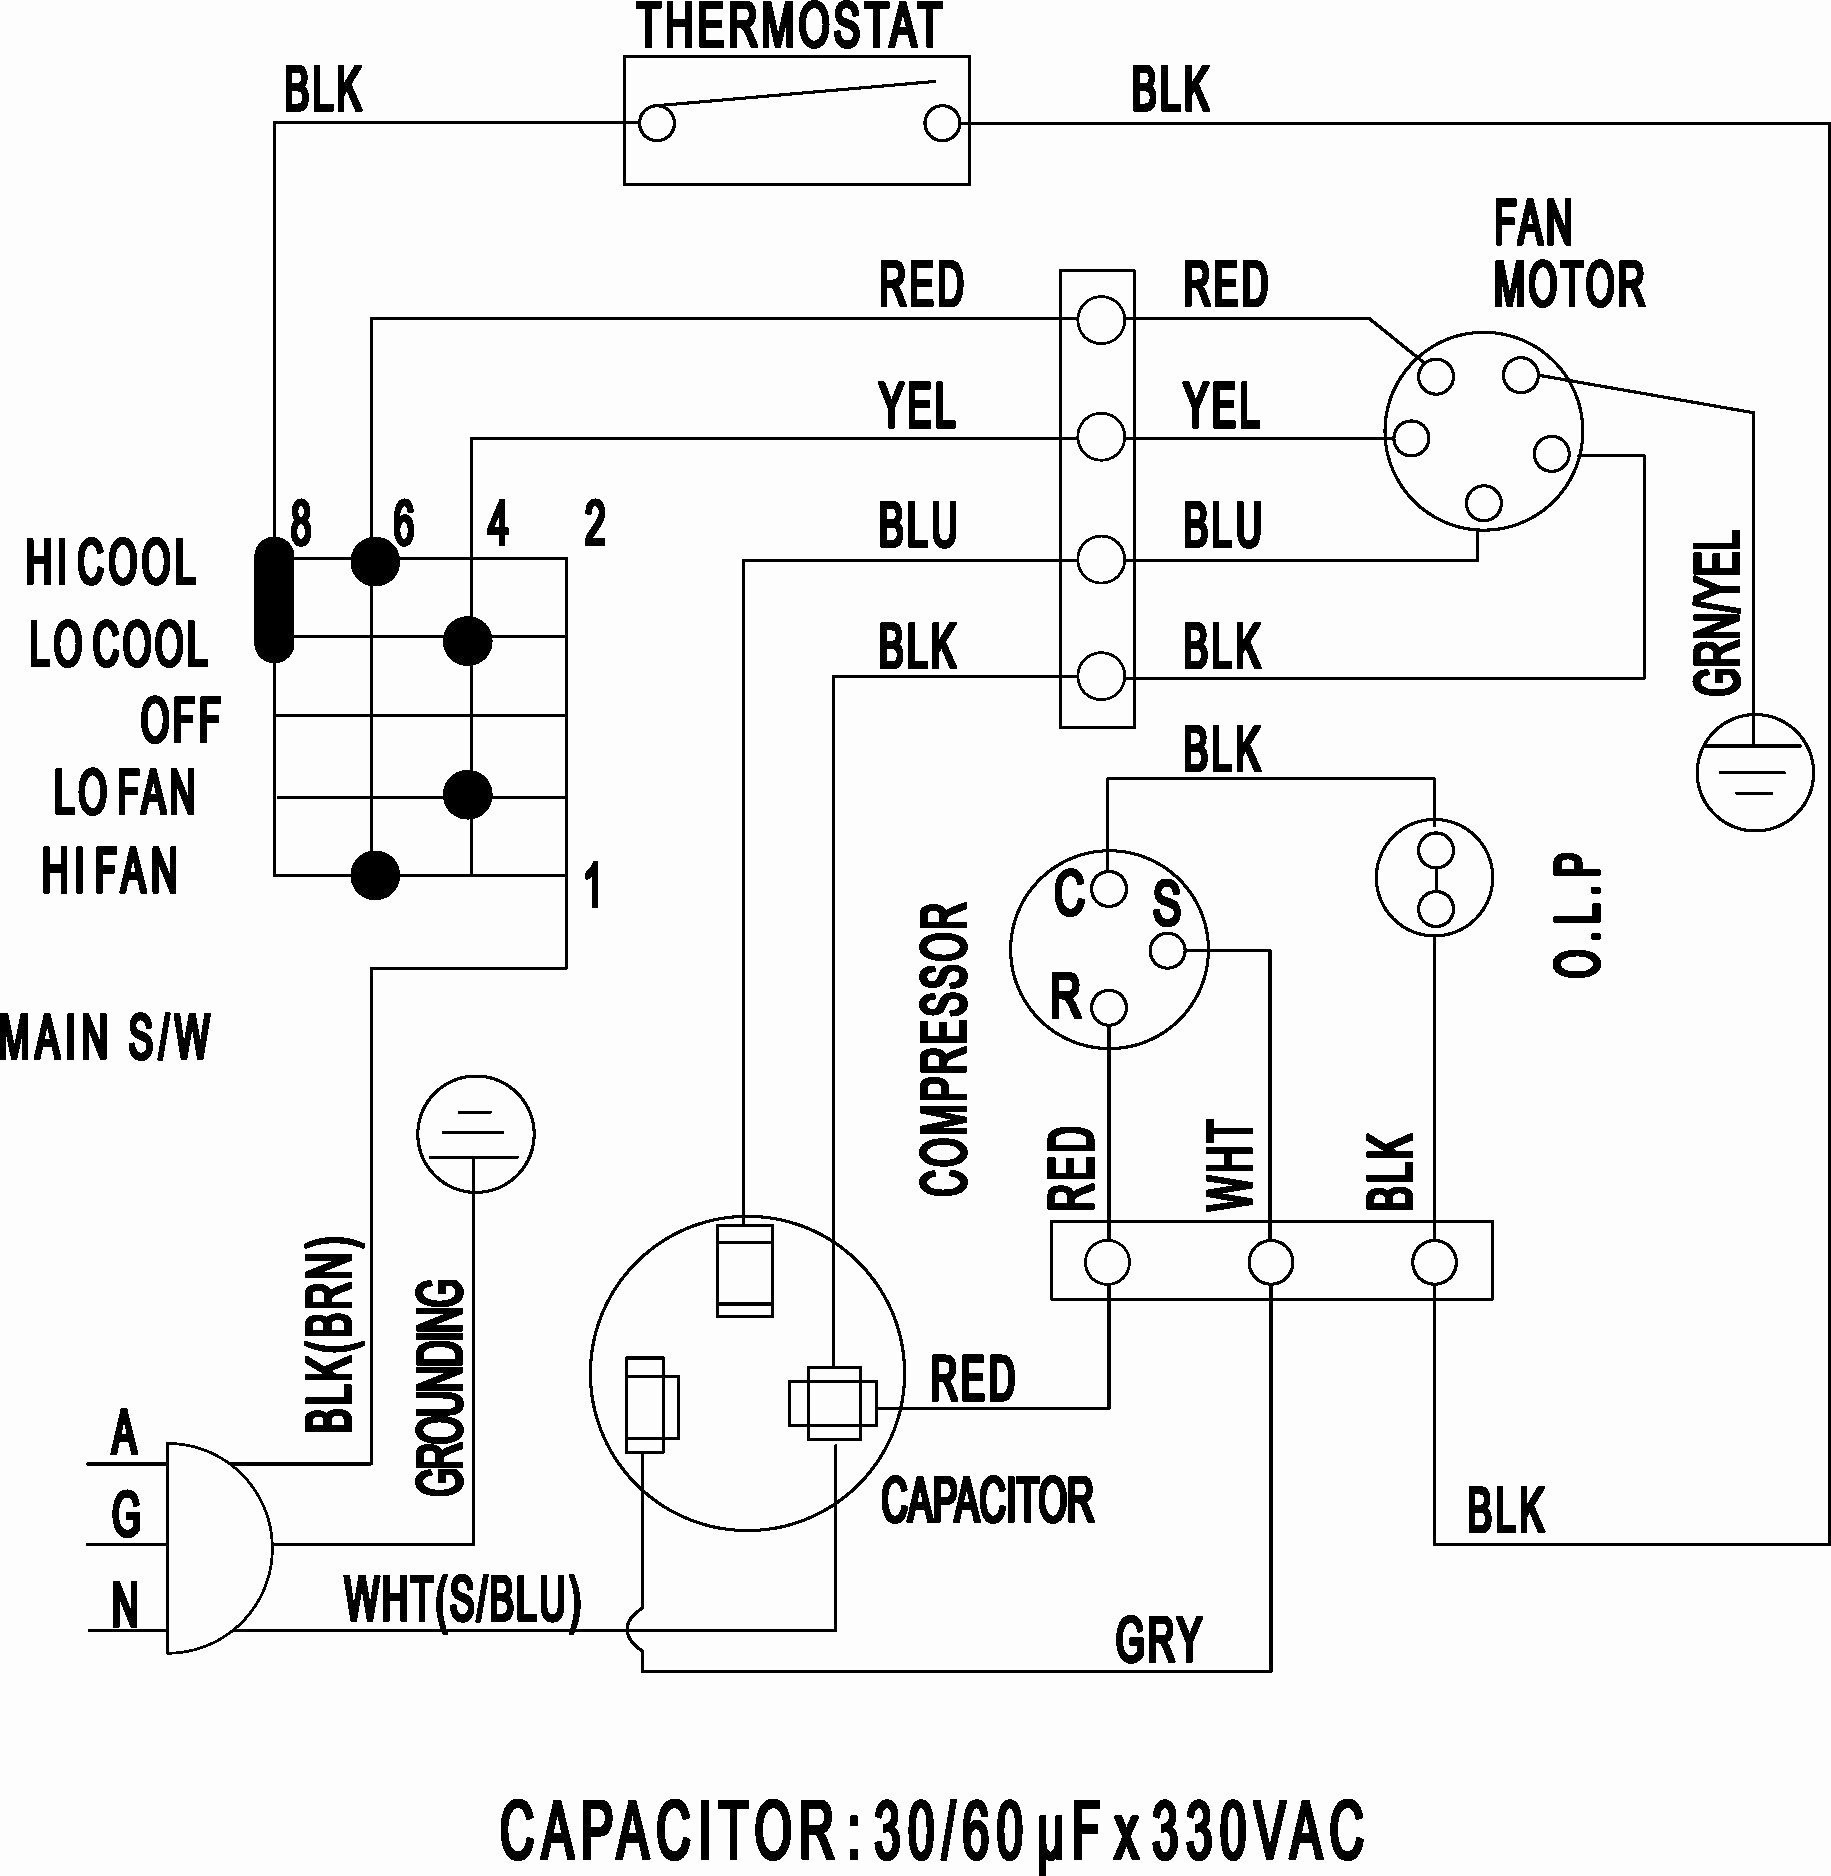 Old Air Wiring Diagram - Wiring Diagram Long Old Air Products Wiring Diagram on old caterpillar wiring diagram, air ride technologies wiring diagram, vintage air wiring diagram, old air products thermostat, old air products heater, old carrier wiring diagram, old air products installation,